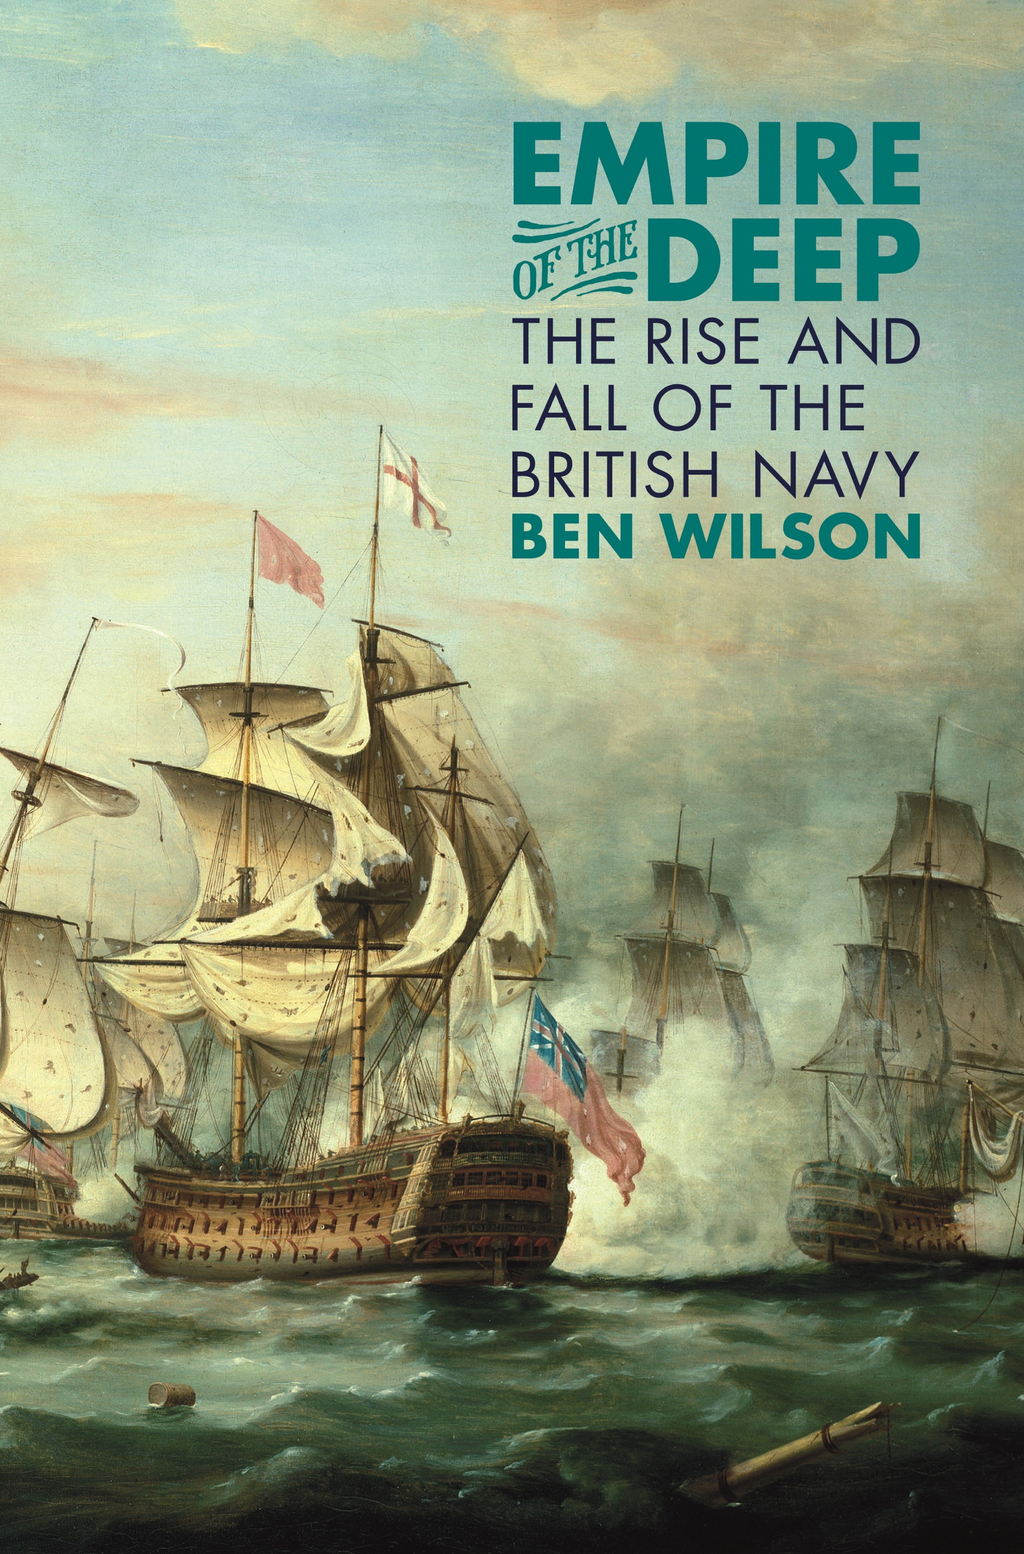 Empire of the Deep The Rise and Fall of the British Navy